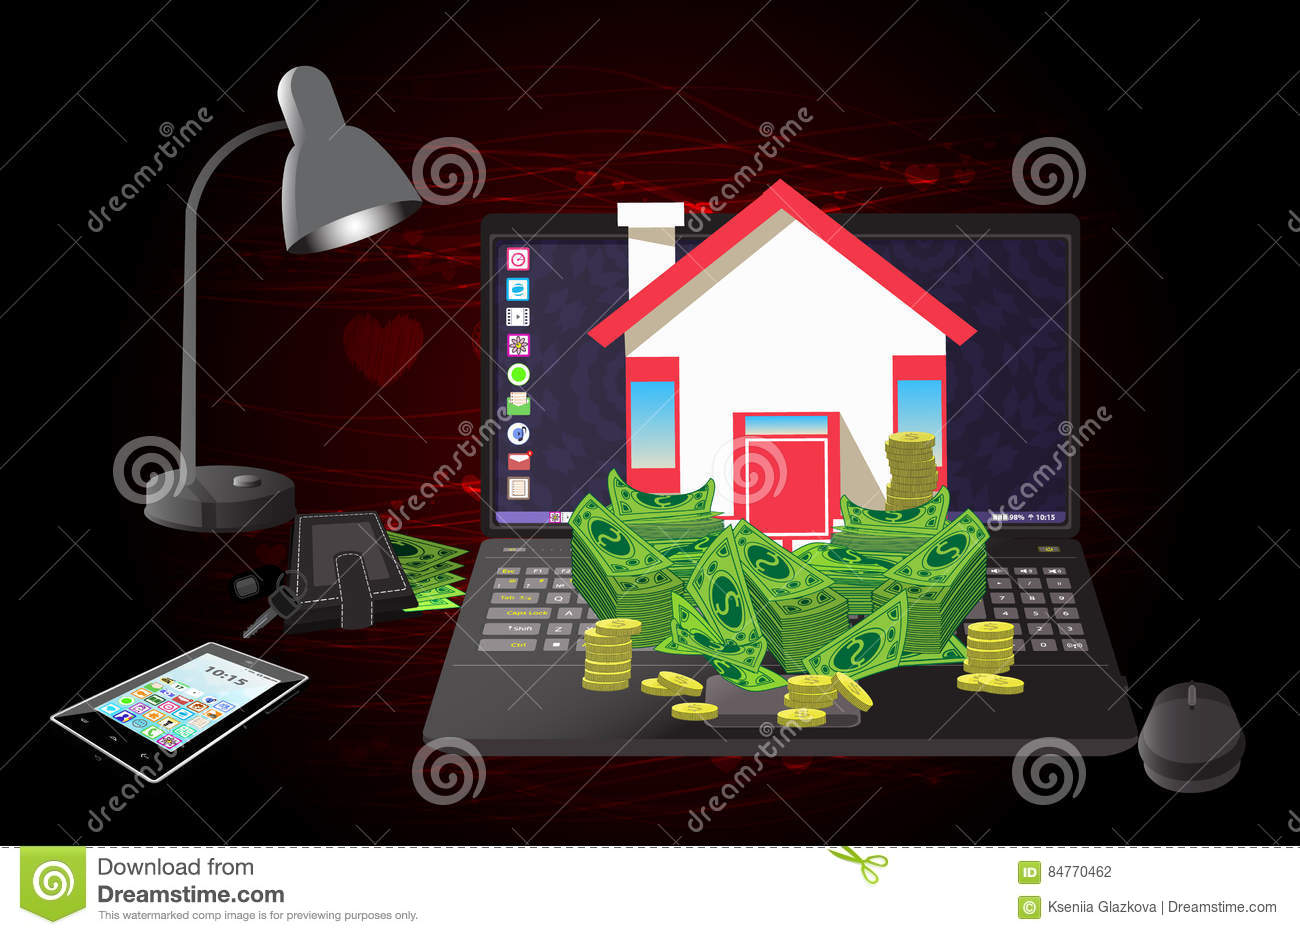 House And Money On A Computer Of Burgundy Stock Vector ... on caribbean house designs, button designs, lantern designs, bunkie designs, keys with designs, poetry designs, house extension designs, house keys fun, diary designs, money designs, stilt home designs, phone designs, florida beach house designs, house entry designs, house warehouse, cool computer designs, house number designs, housekeeping designs, house of k fashion logo, black and white abstract designs,